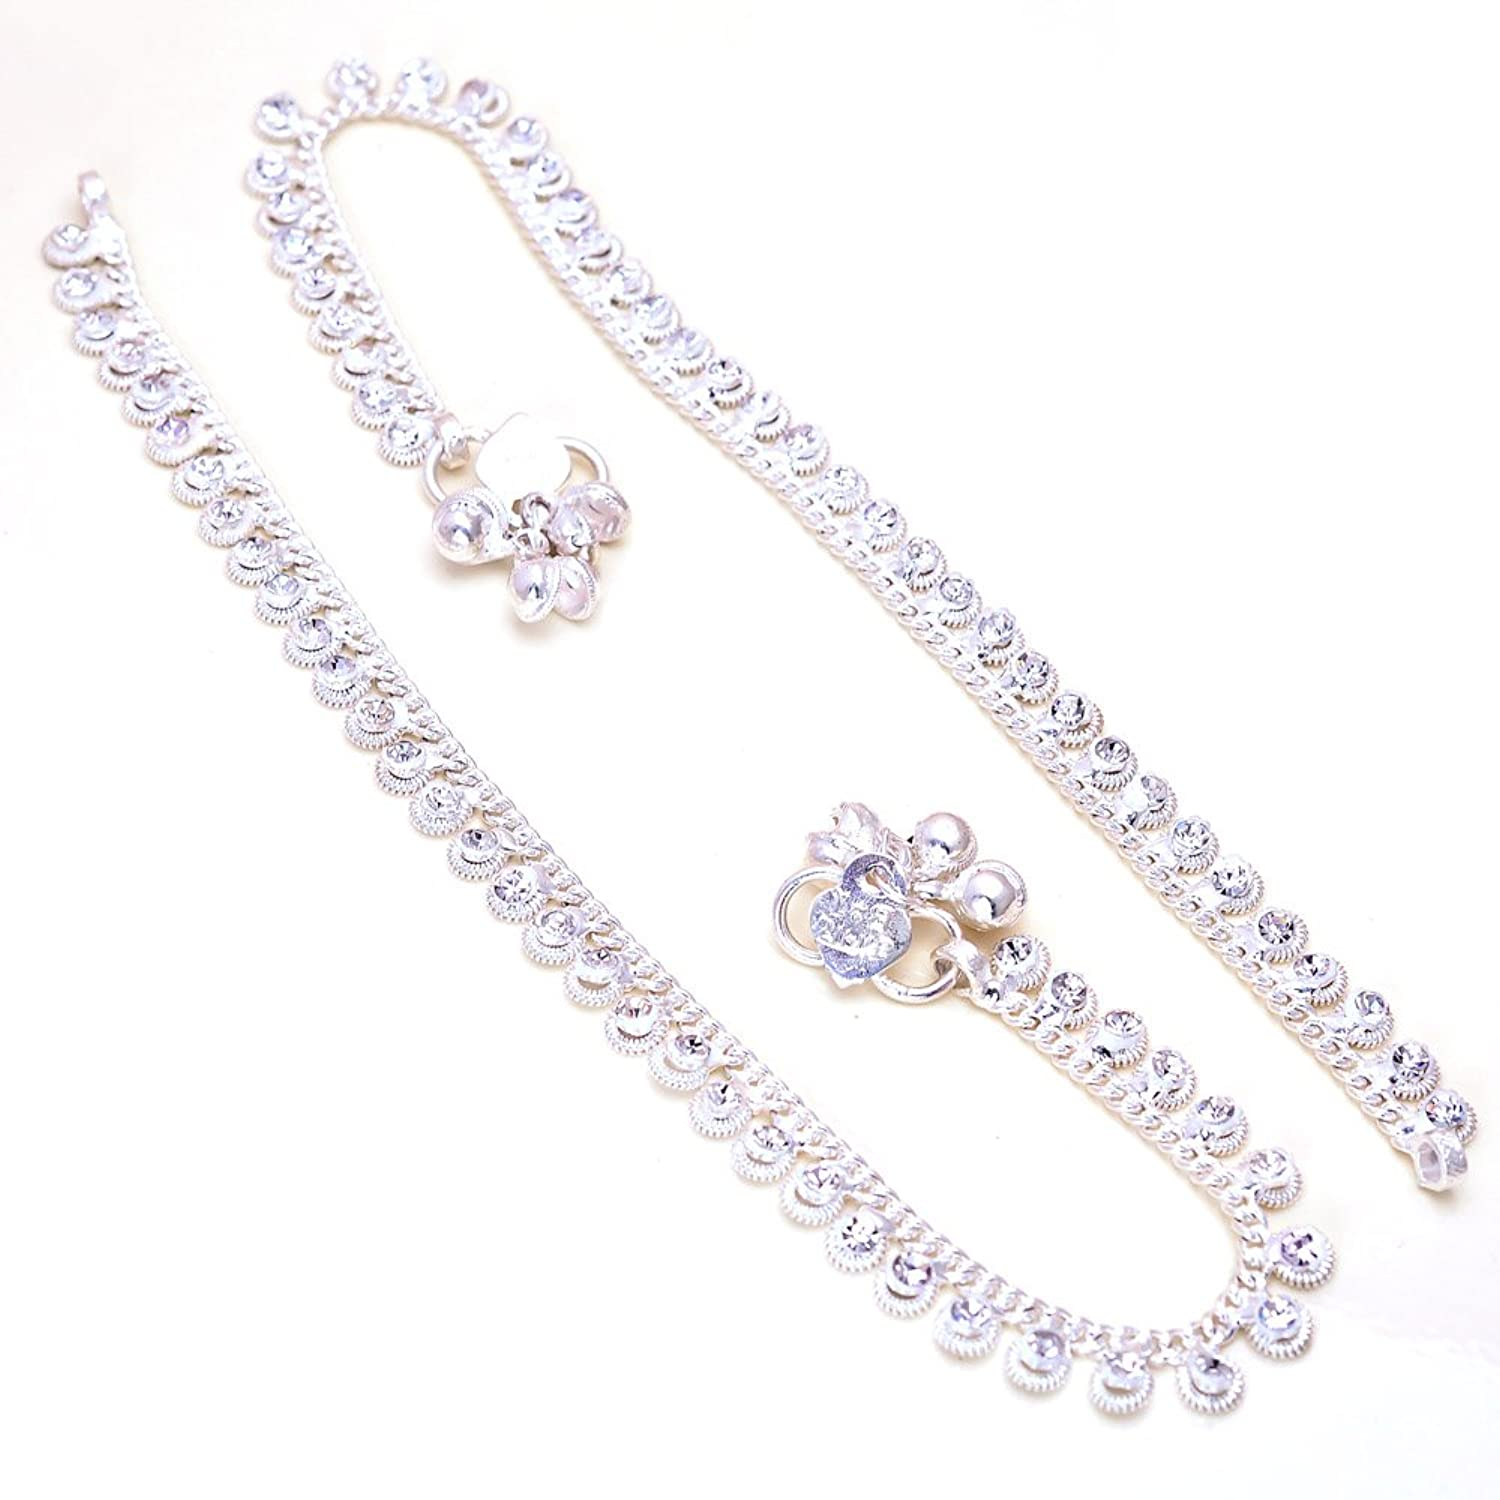 jewellery anklet caiman anklets product silver by women category sorting default designer posting